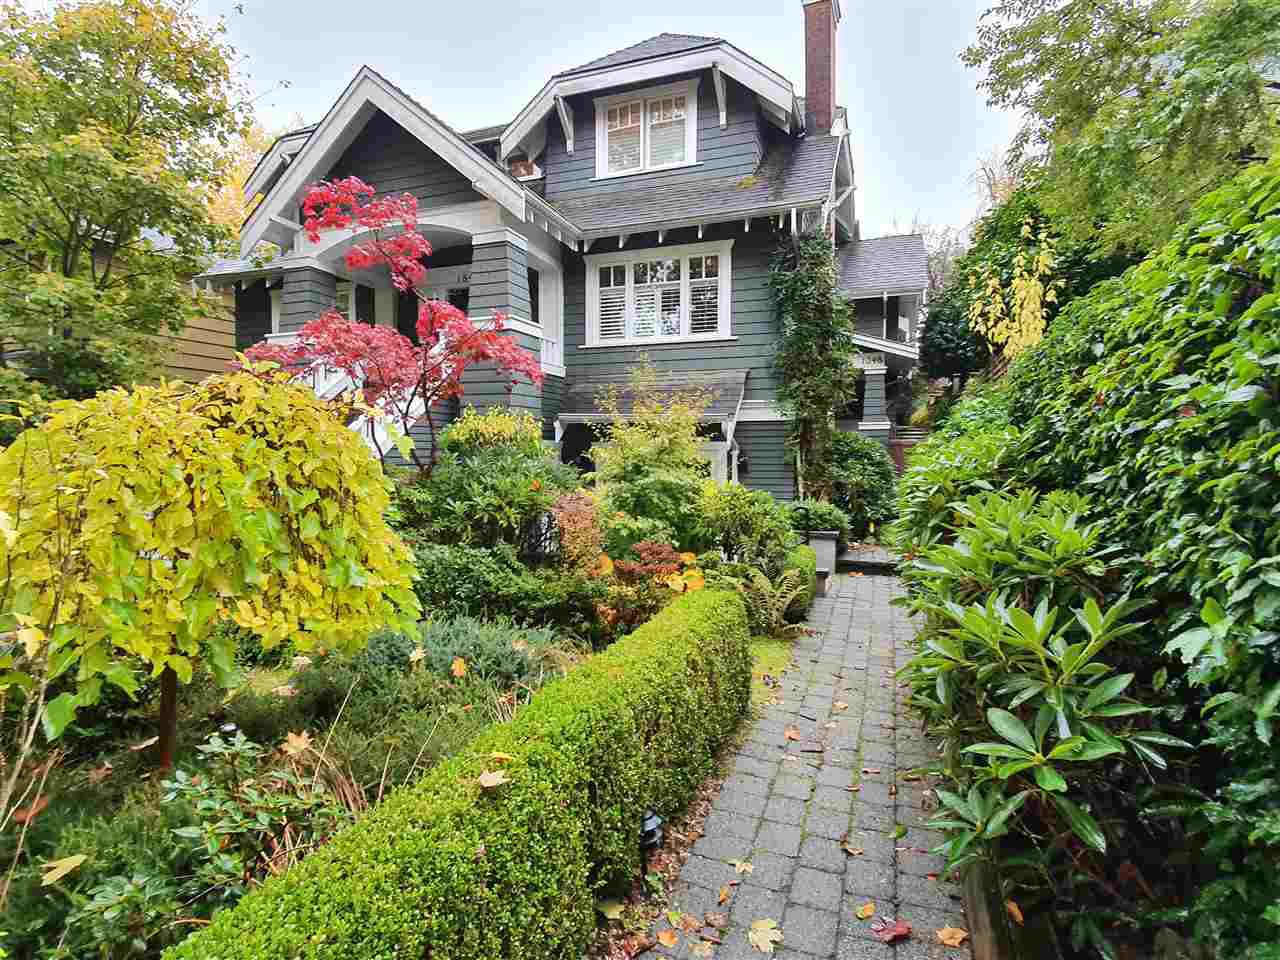 Main Photo: 1848 W 13TH Avenue in Vancouver: Kitsilano 1/2 Duplex for sale (Vancouver West)  : MLS®# R2517496